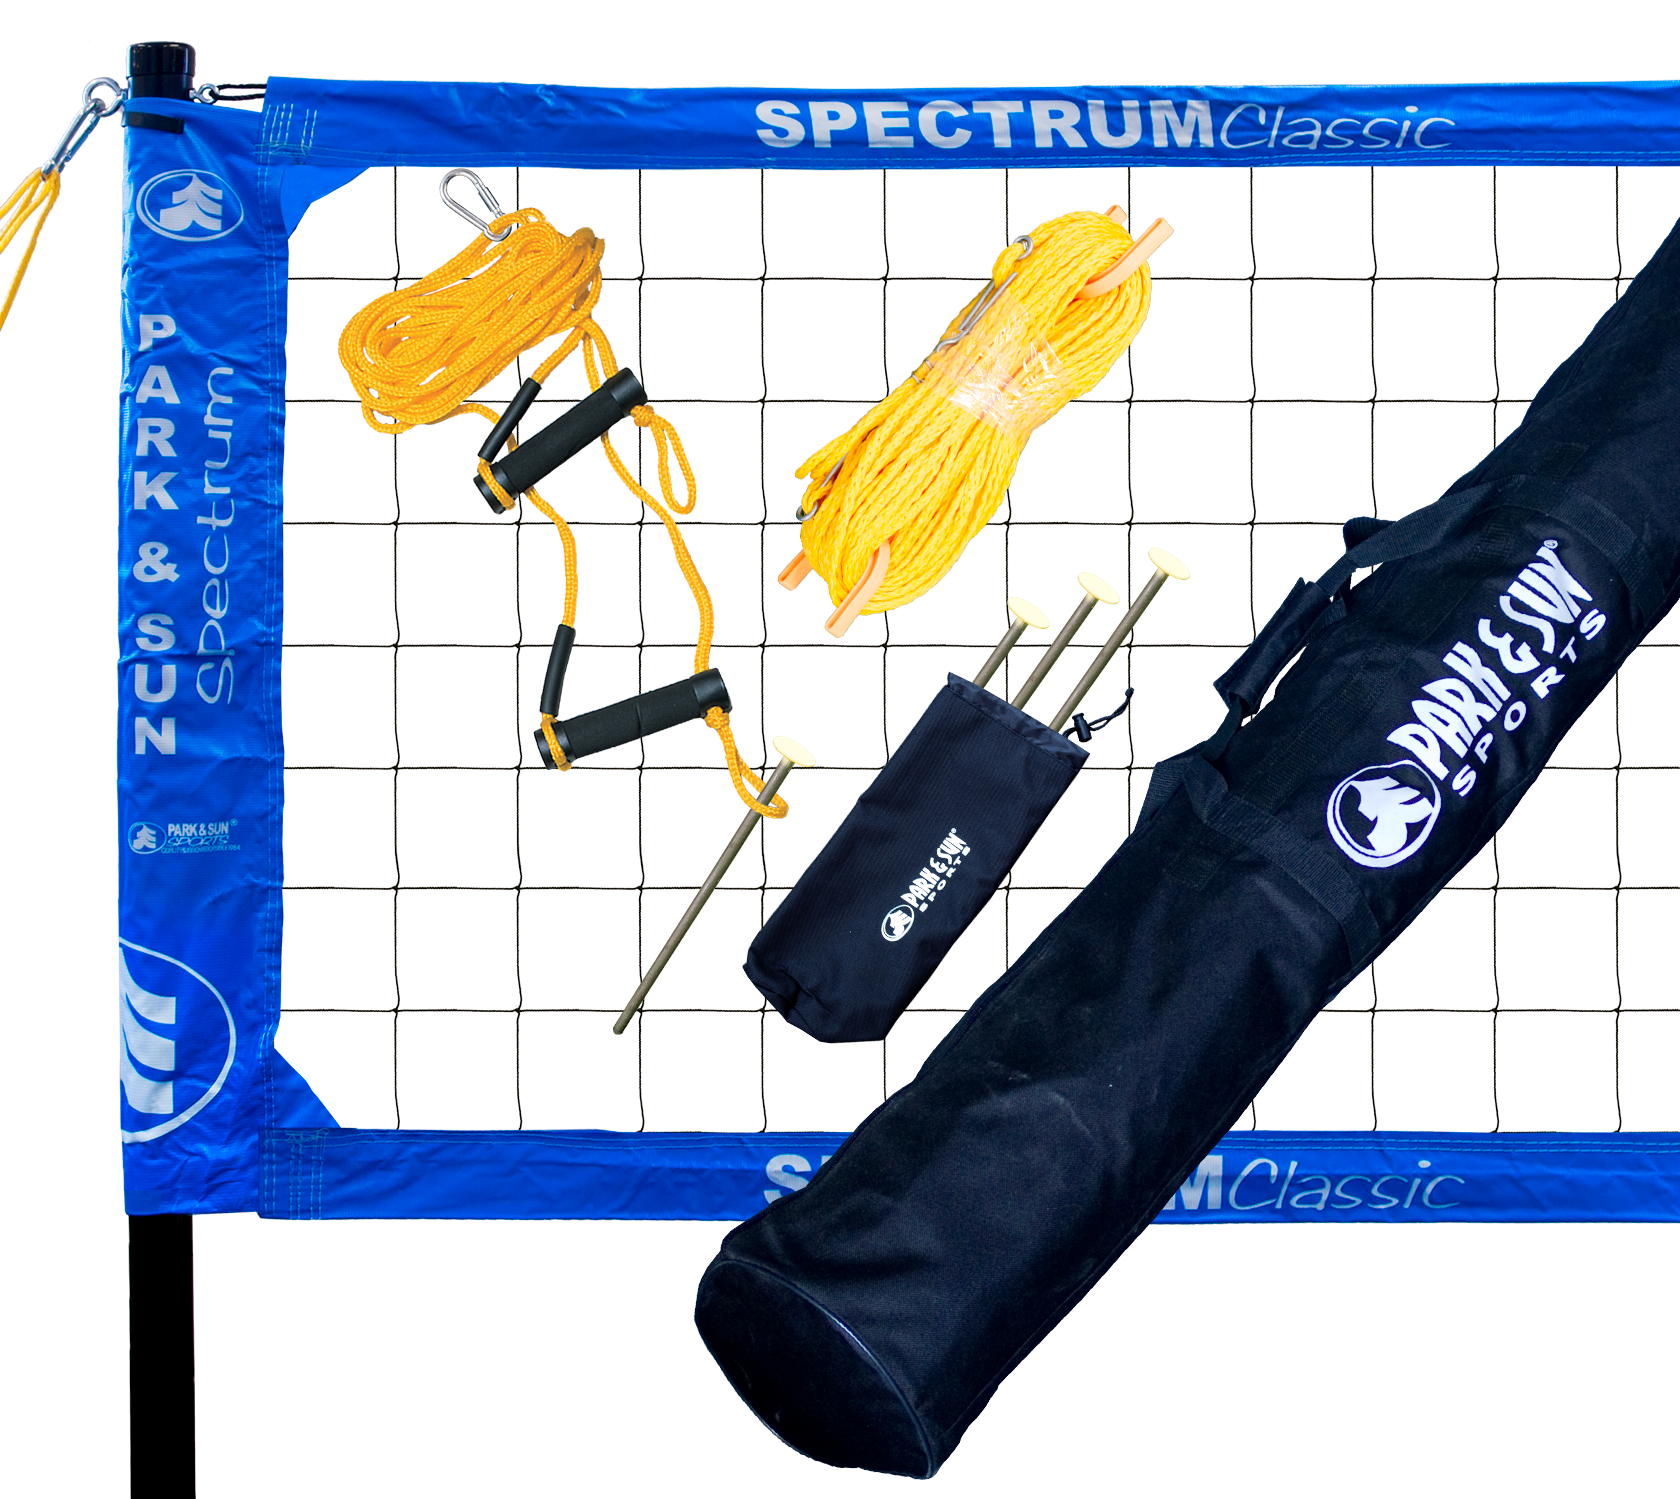 Park and Sports Blue Spectrum Classic Product Layout